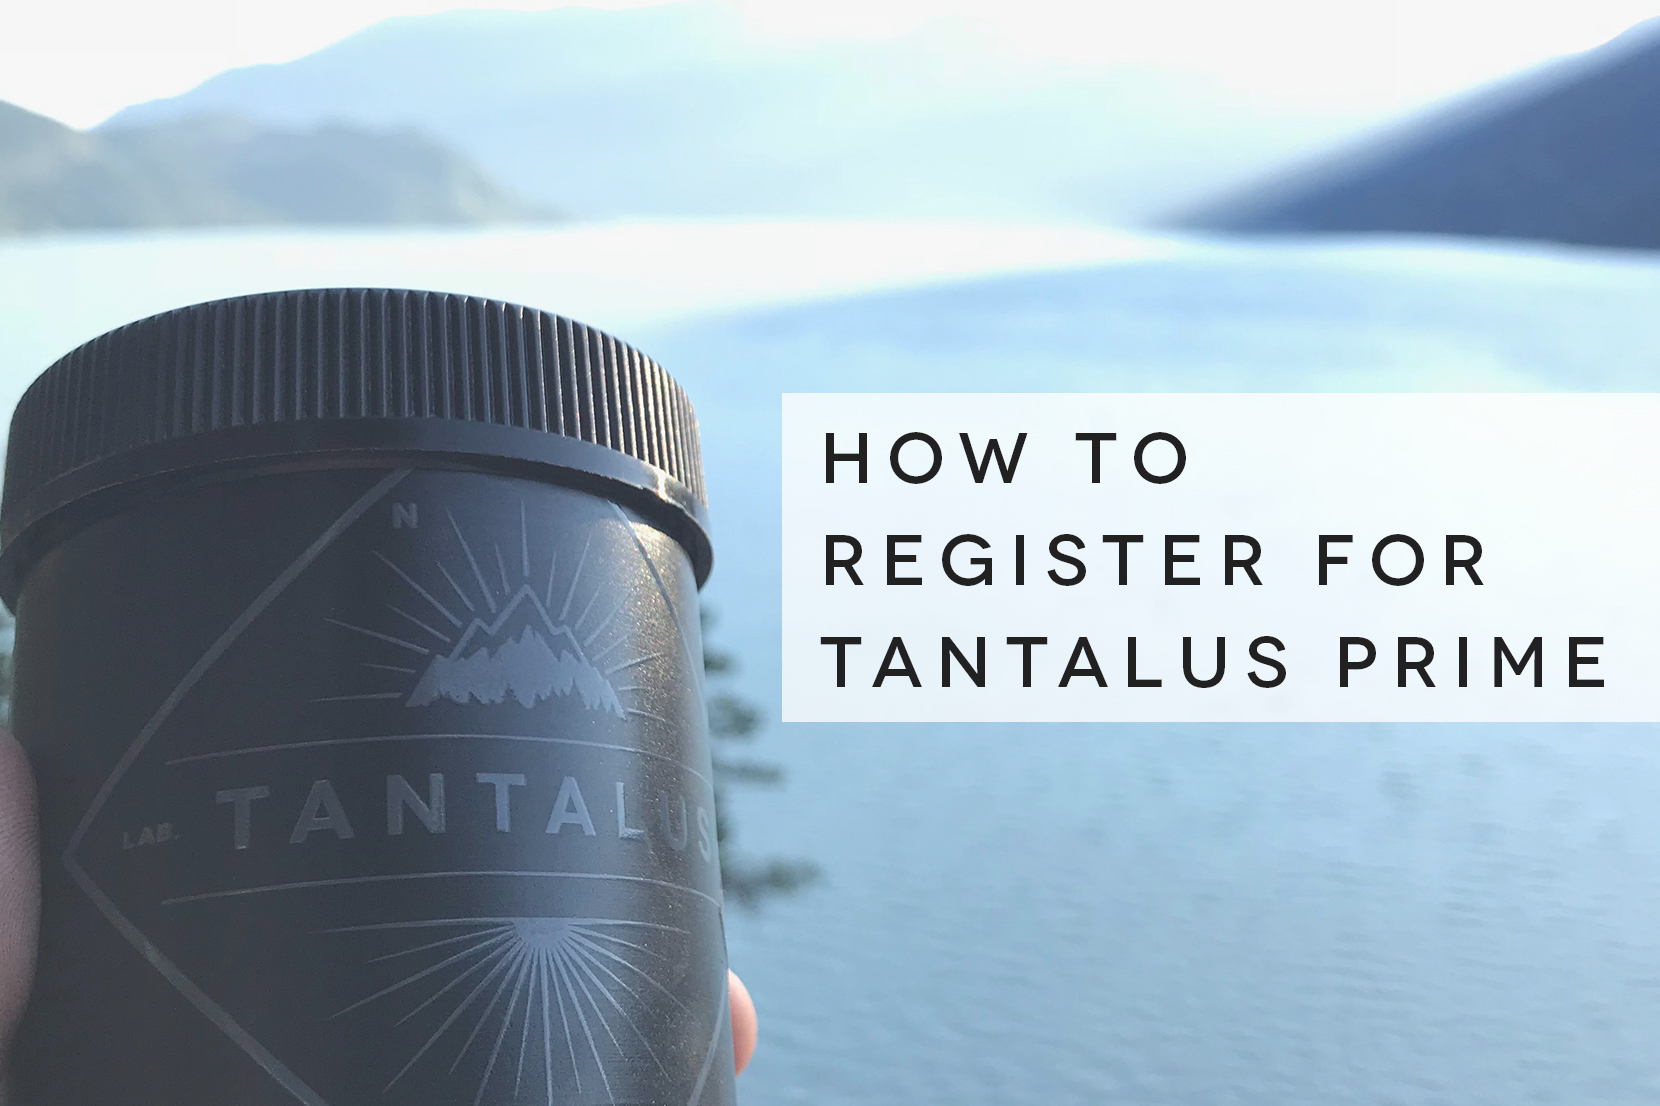 How to Register for Tantalus Prime